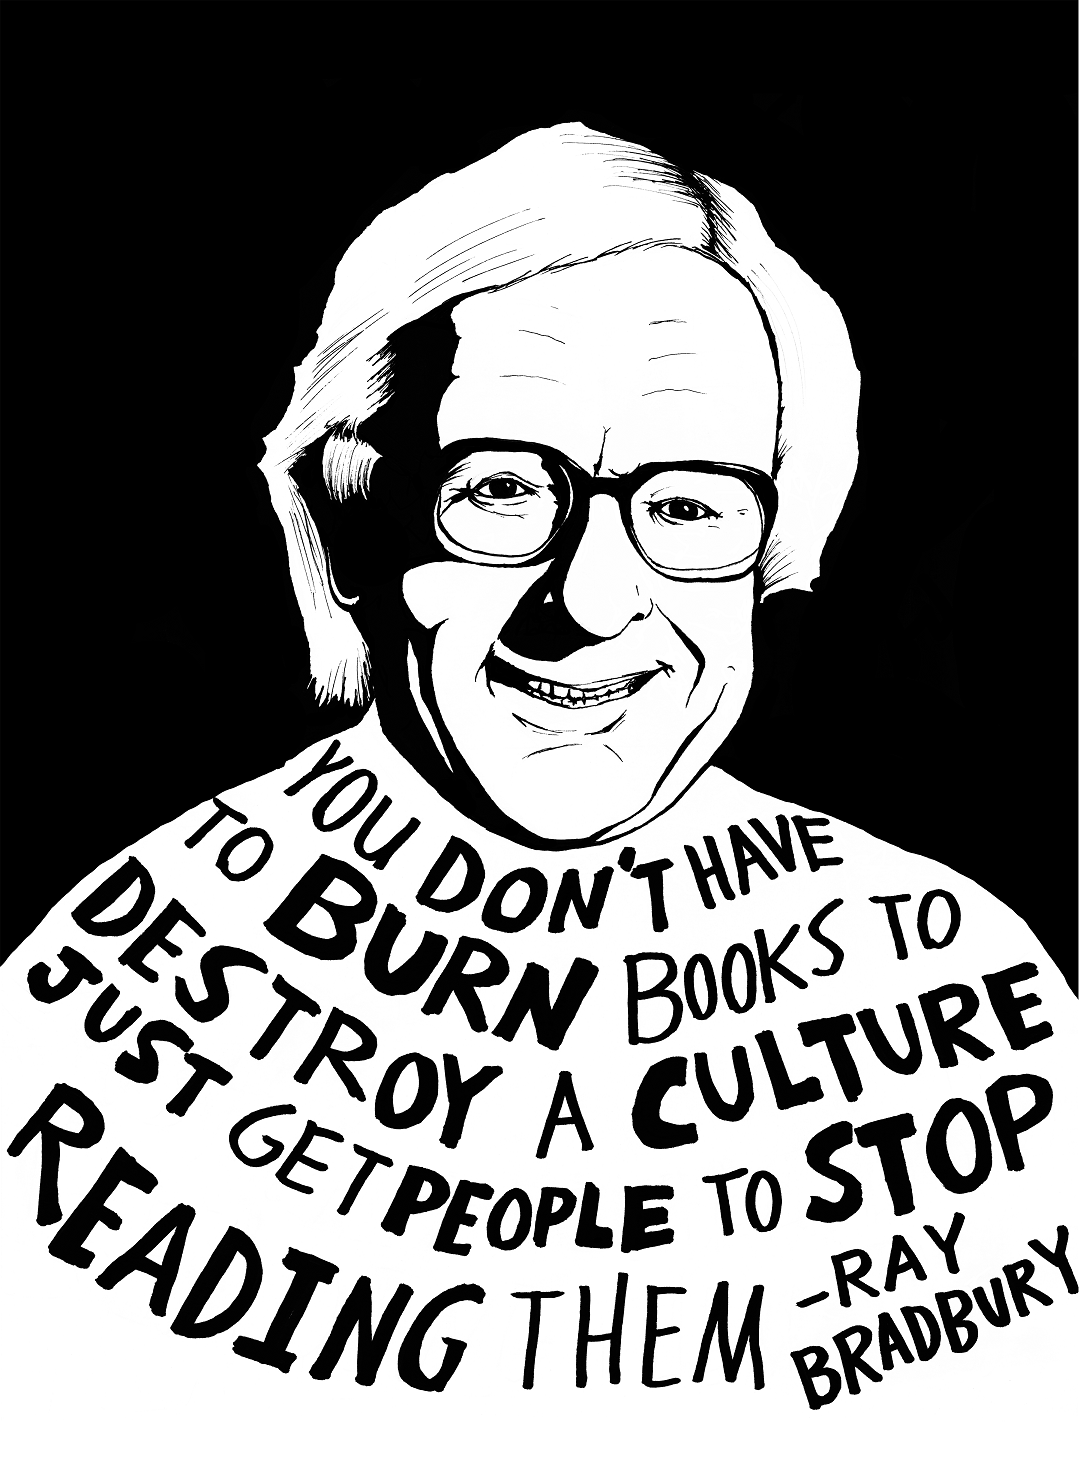 Ray Bradbury depicted in art by Ryan Sheffield